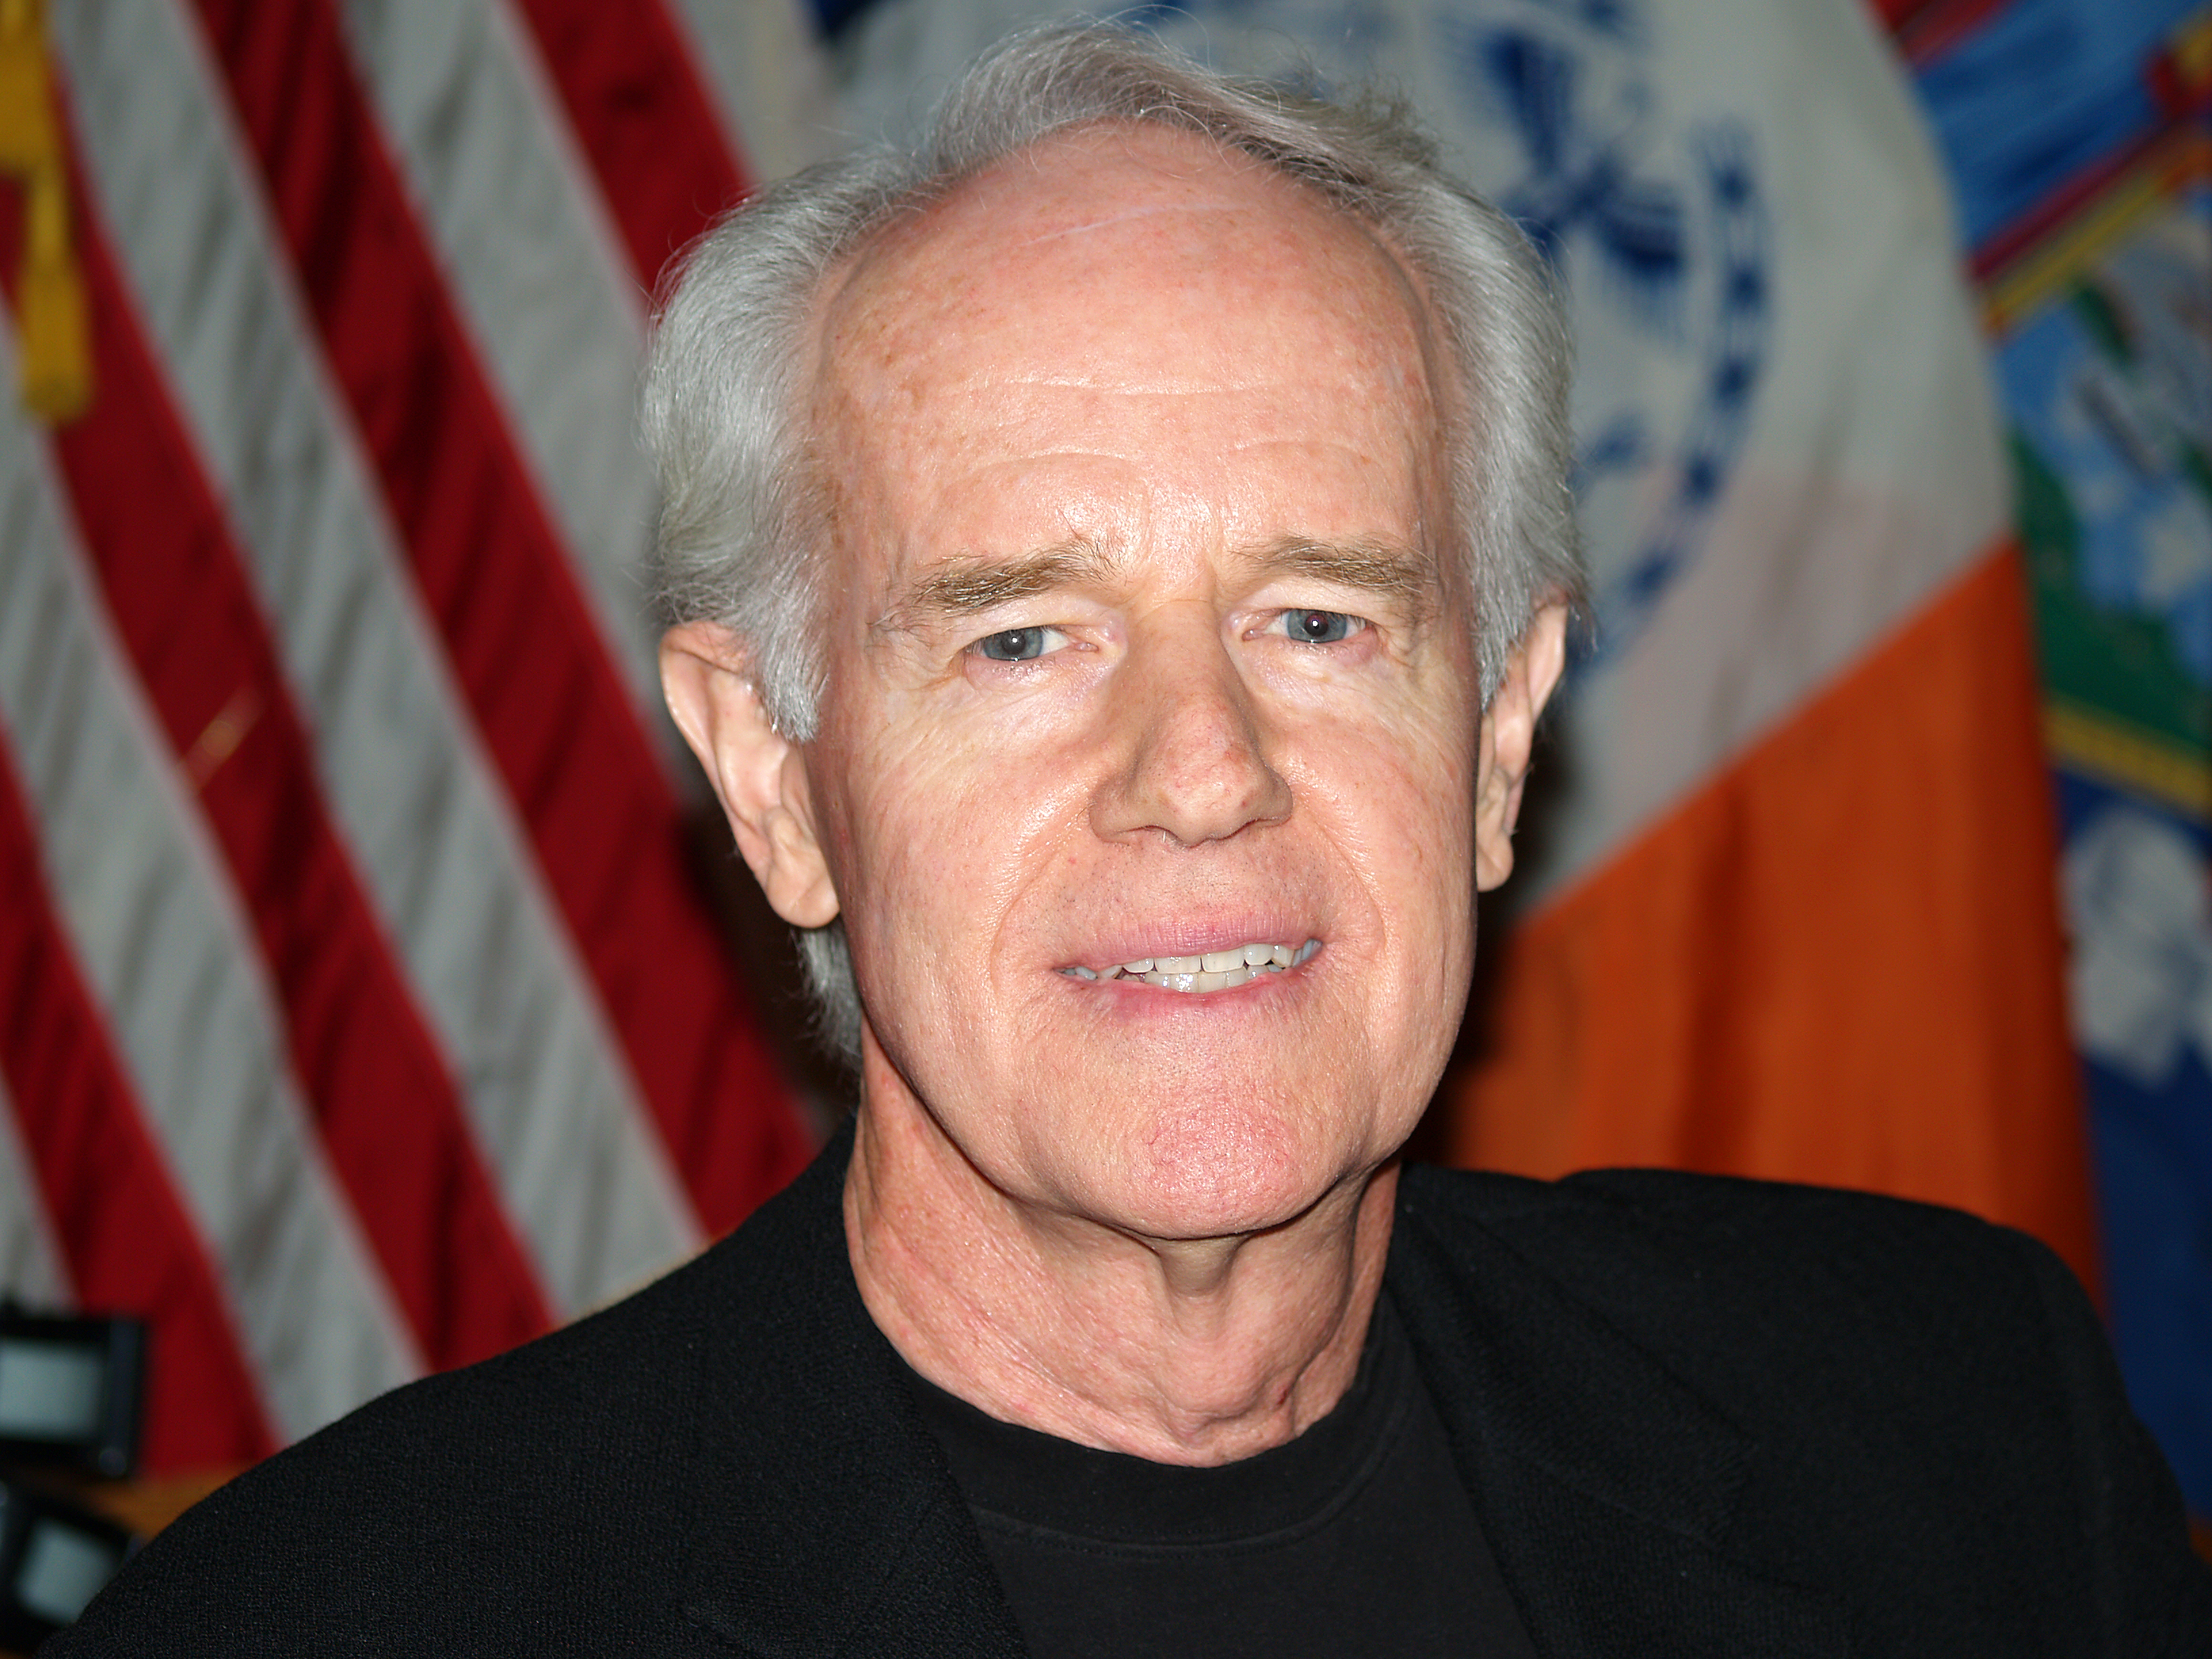 mike farrell quotesmike farrell twitter, mike farrell wikipedia, mike farrell quotes, mike farrell, mike farrell mash, mike farrell linkedin, mike farrell supernatural, mike farrell net worth, mike farrell obituary, mike farrell comedian, mike farrell and shelley fabares, mike farrell imdb, mike farrell attorney, mike farrell vet, mike farrell mormon, mike farrell rivals bio, mike farrell facebook, mike farrell death, mike farrell kpmg, mike farrell dead